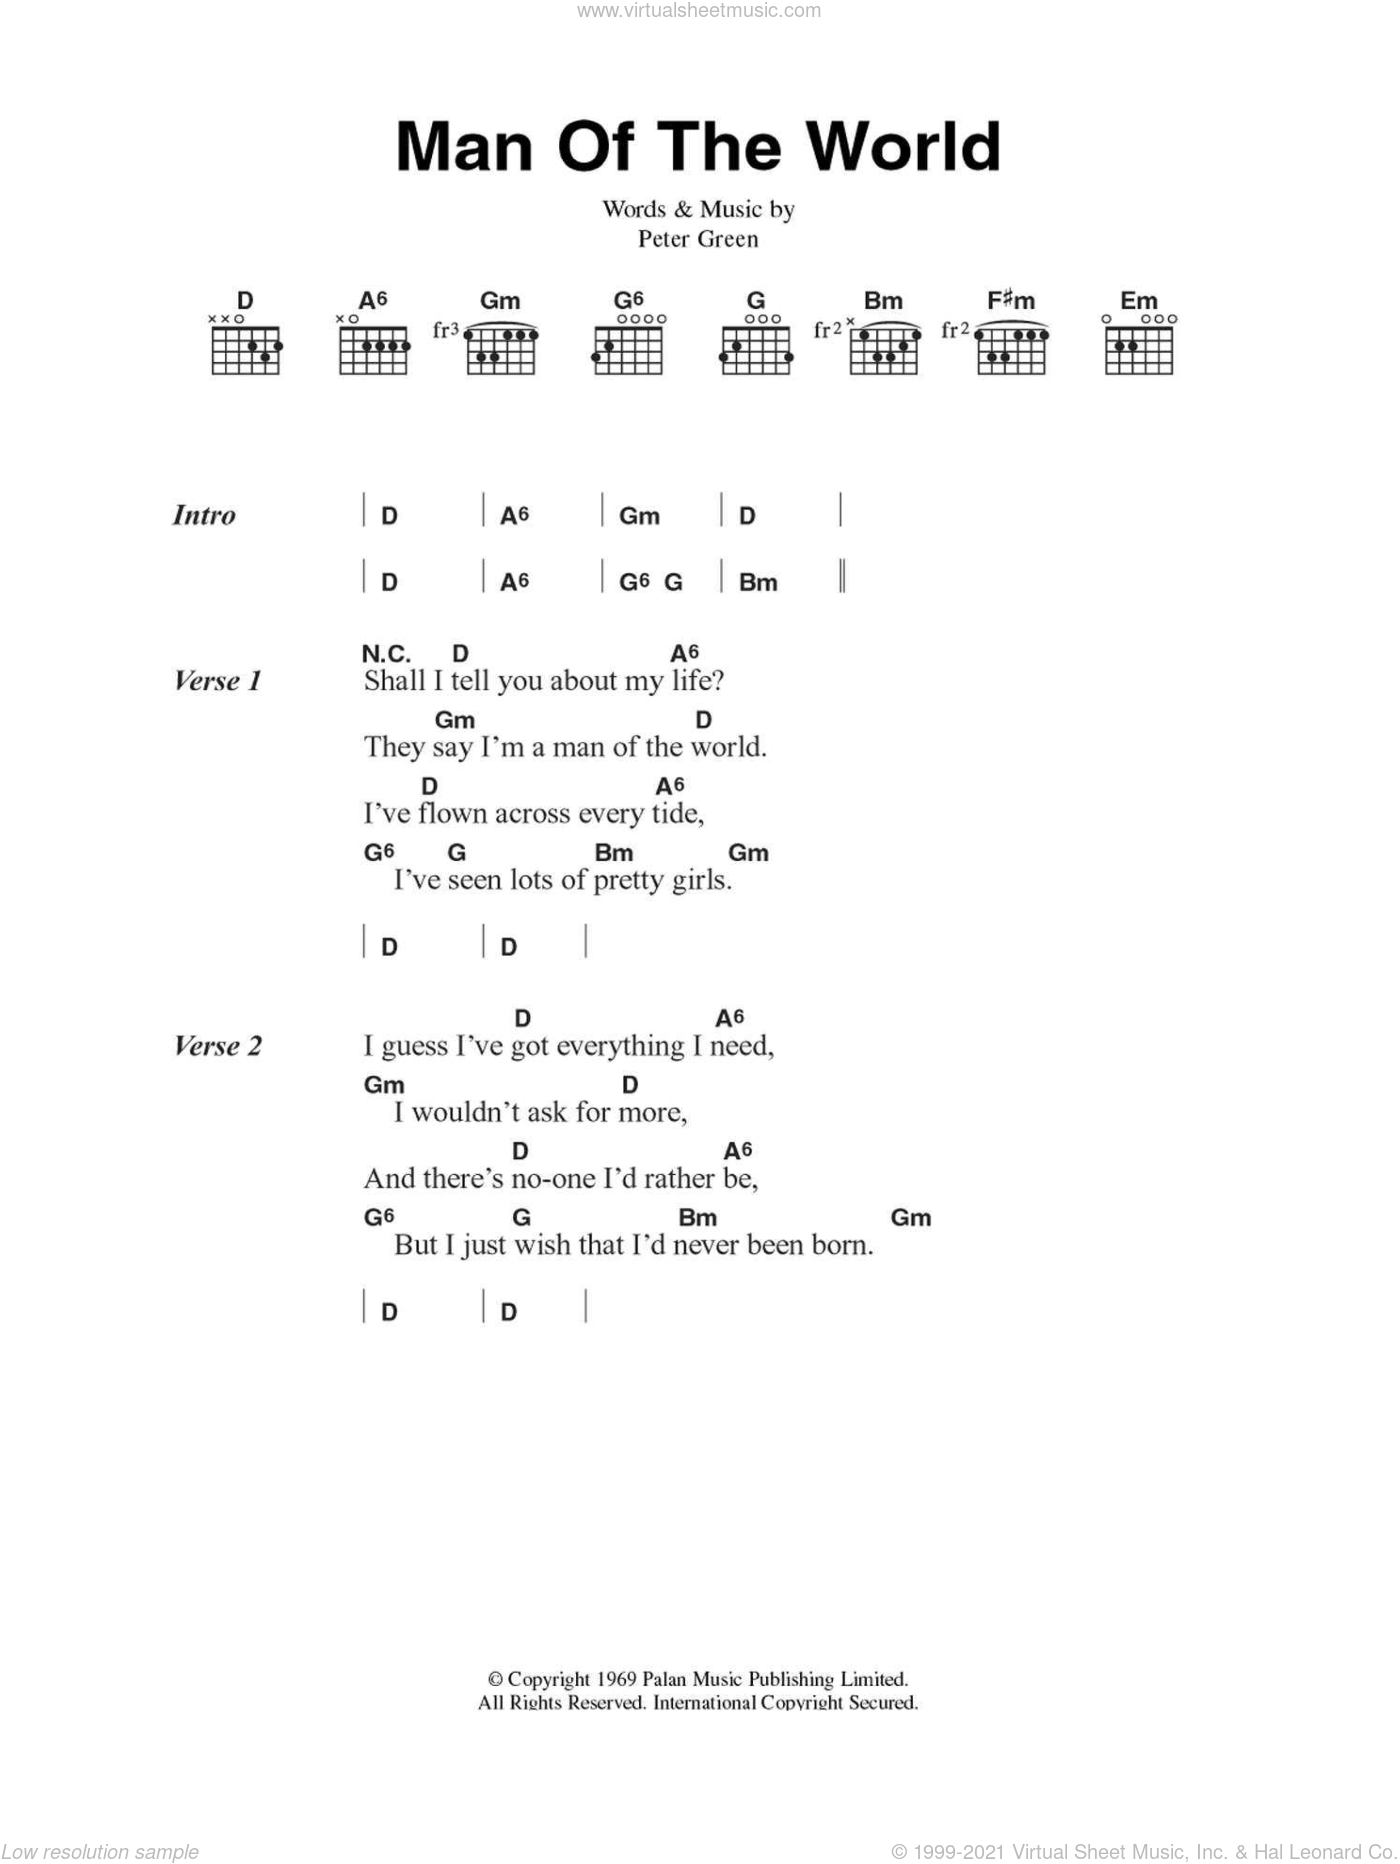 Mac - Man Of The World sheet music for guitar (chords) [PDF]